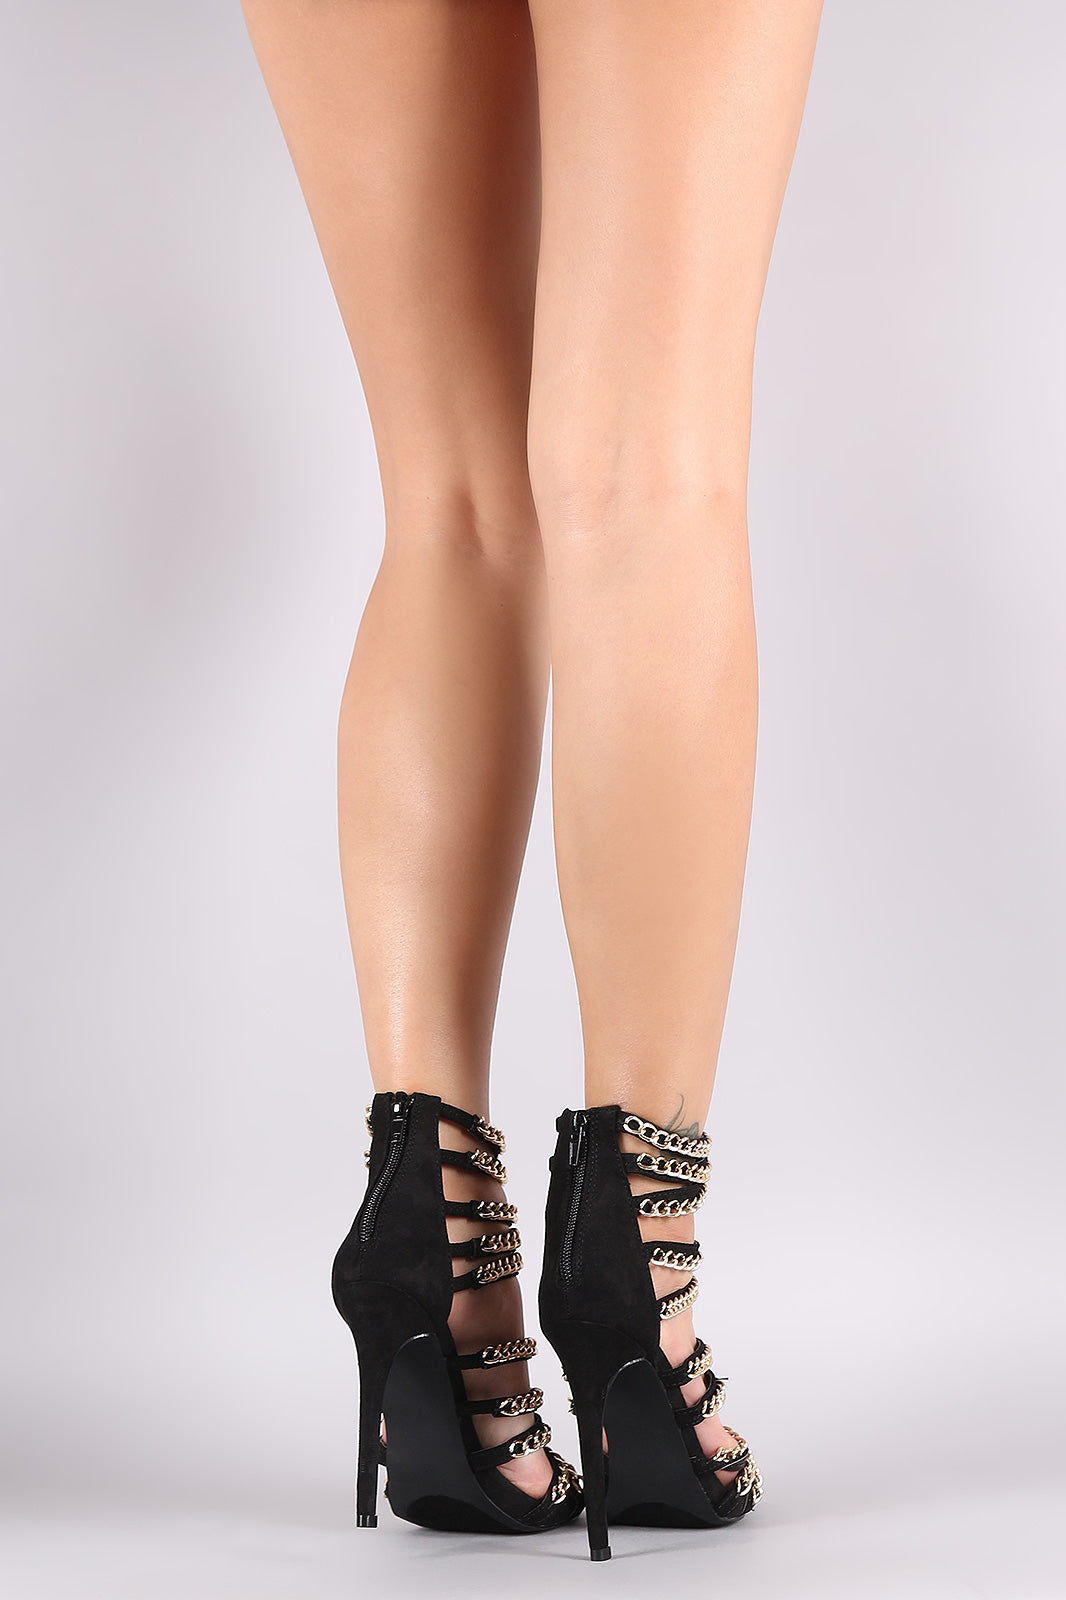 Melody Strappy Chain Embellished Open Toe Stiletto Heel - Black